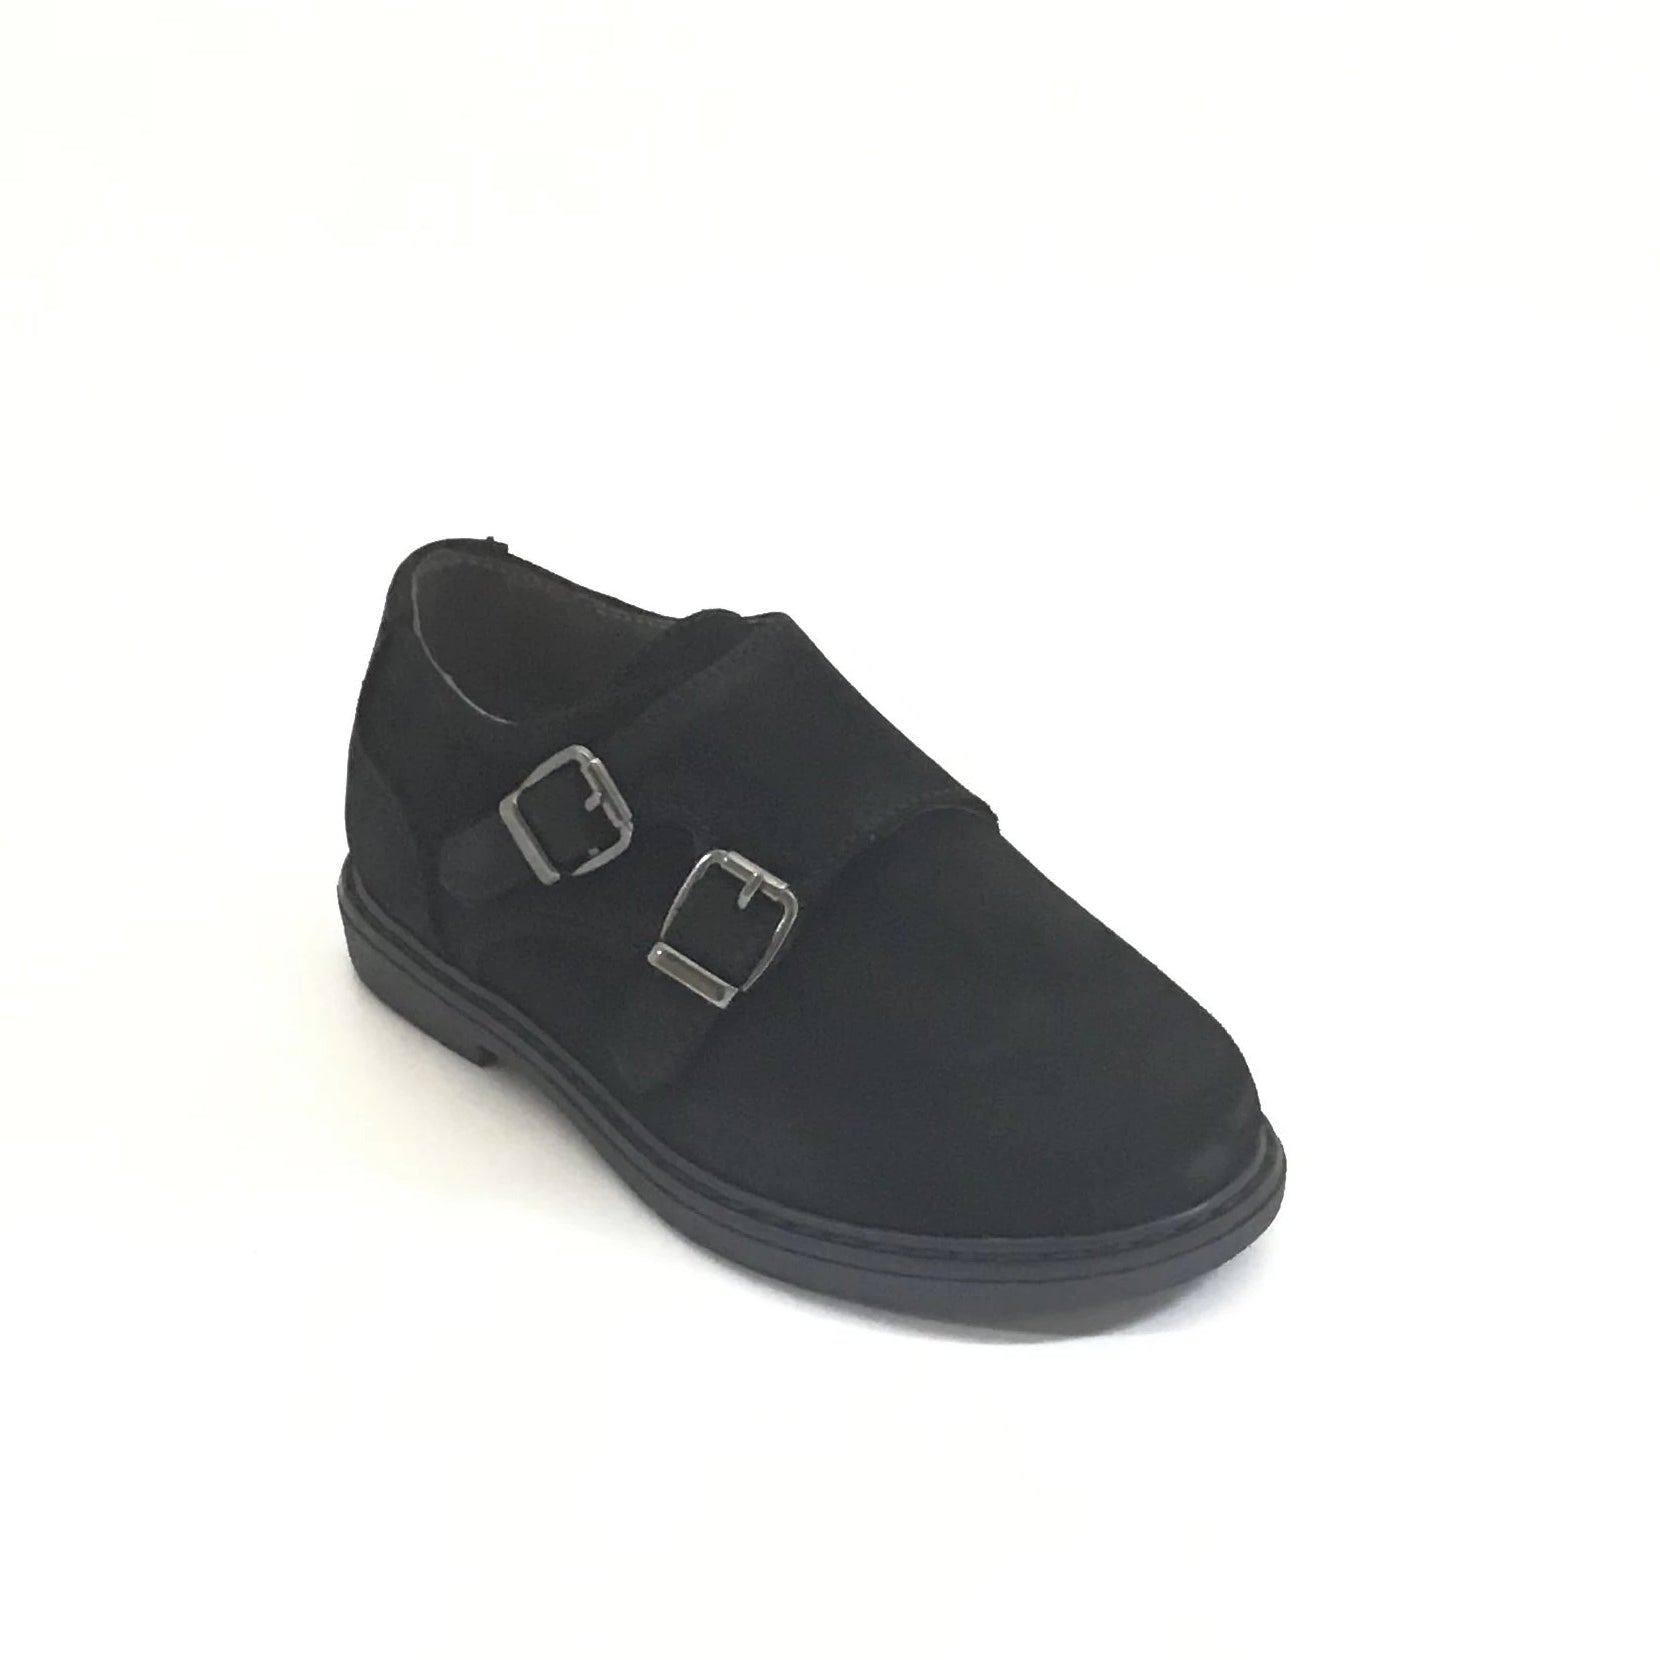 Blublonc Black Suede Double Buckle Velcro